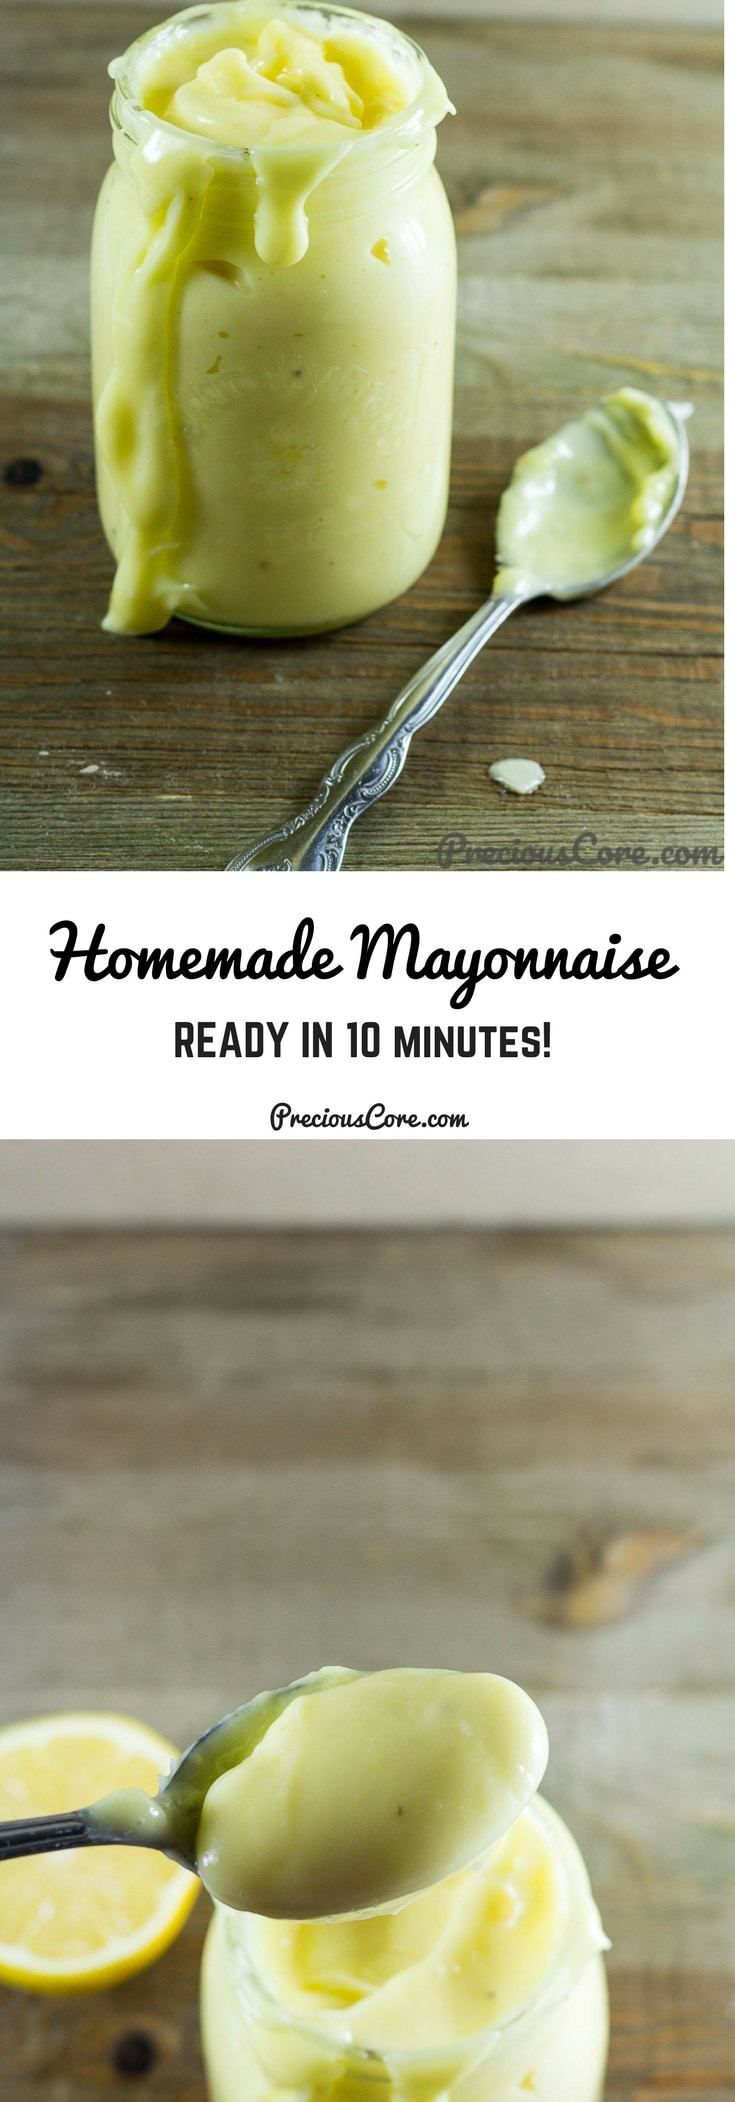 How to make mayonnaise at home! This homemade mayonnaise recipe is so easy, tastes insanely good and much healthier than storebought. Use it on sandwiches, salads, for dips and more! Recipe on PreciousCore.com. #Mayonnaise #Homemade